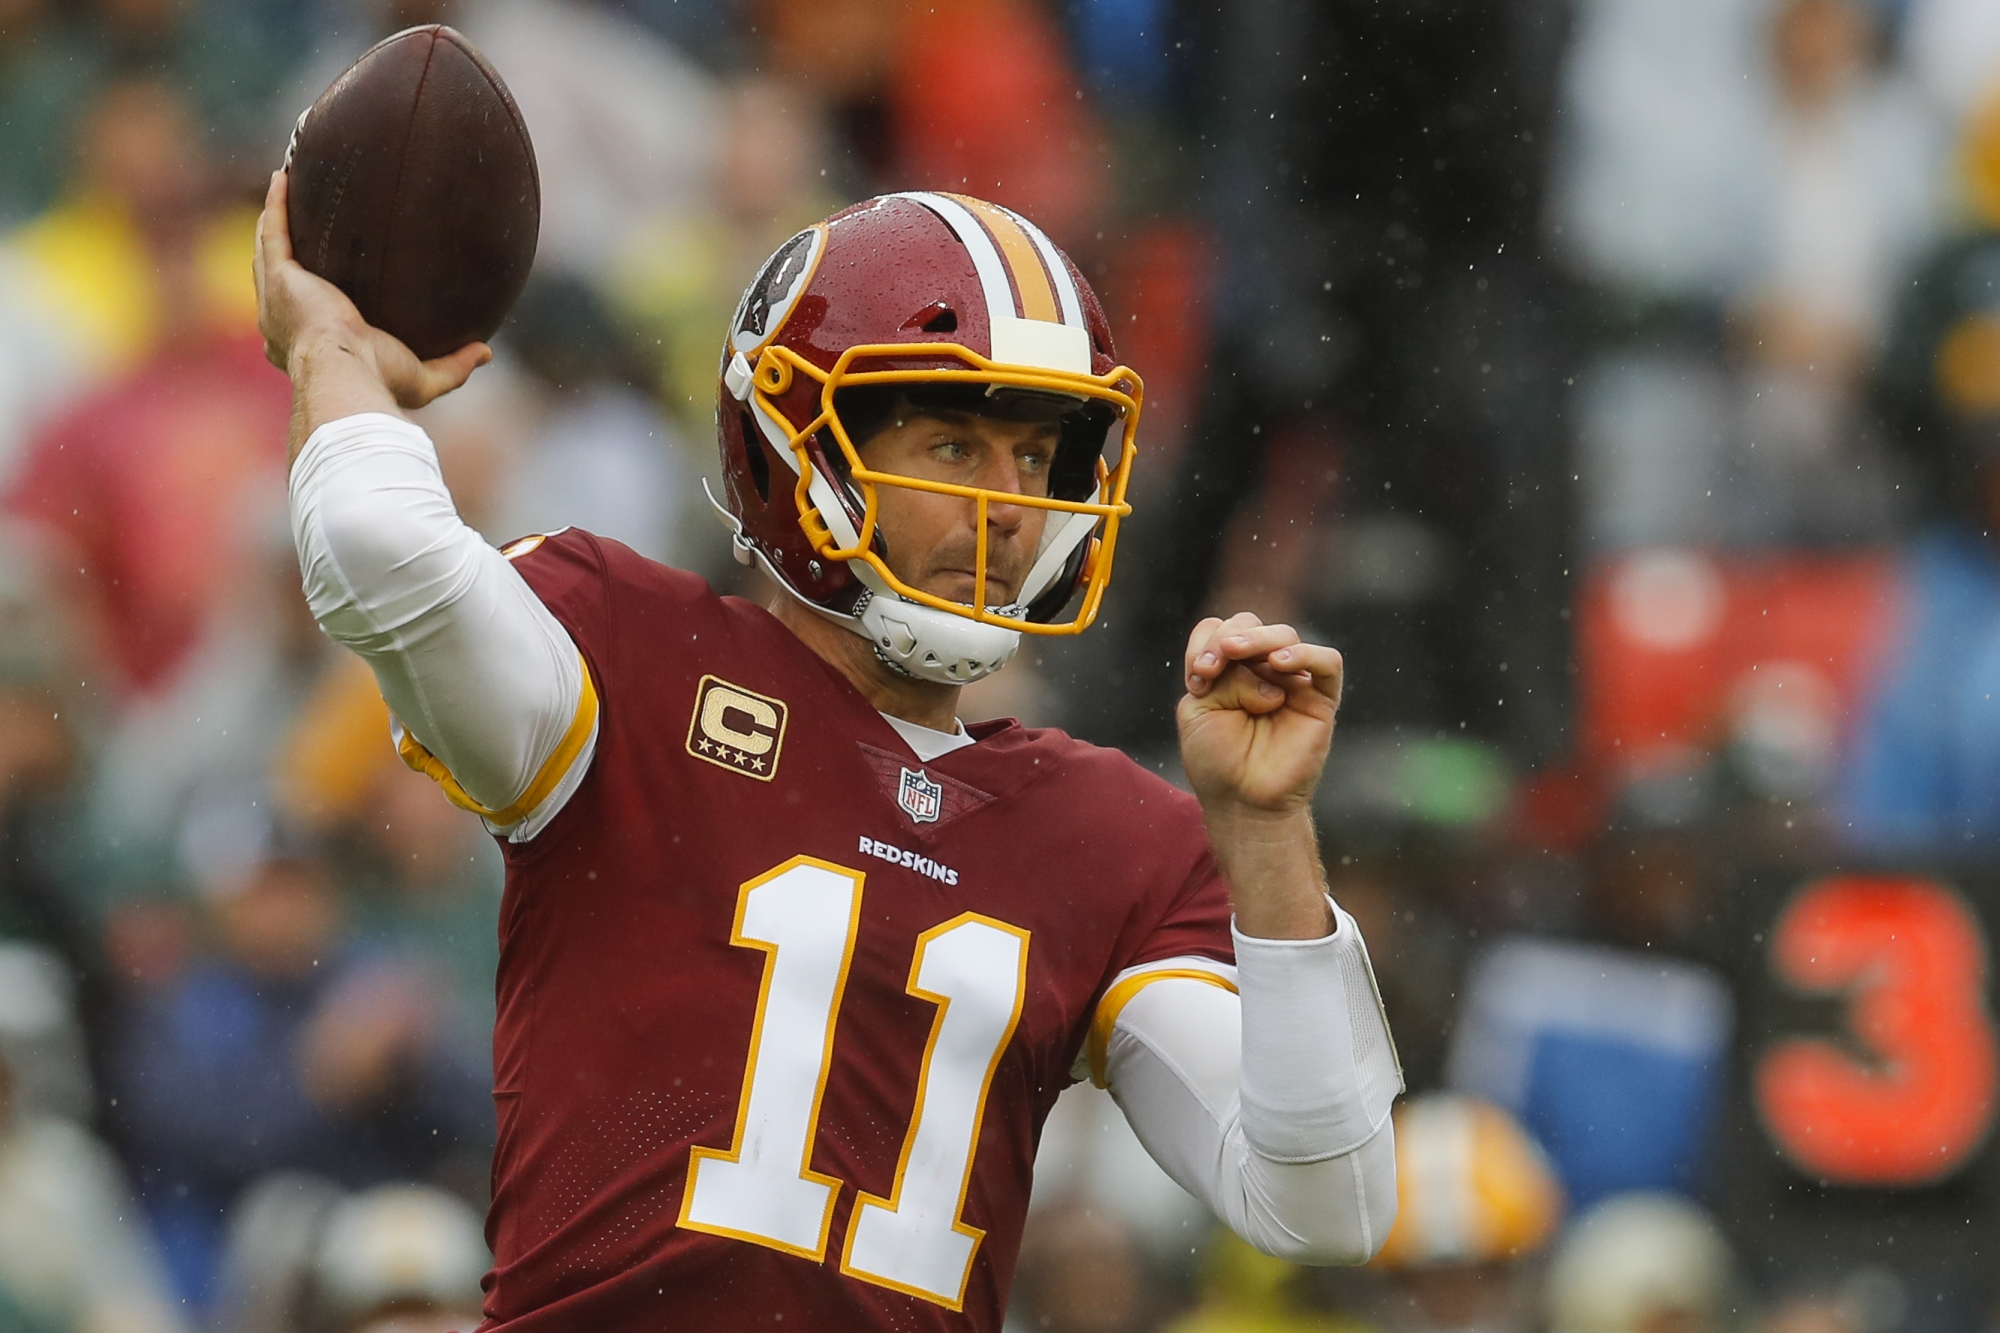 sports shoes d7d13 c5d8a Redskins QB Alex Smith on playing again: 'That's the plan ...